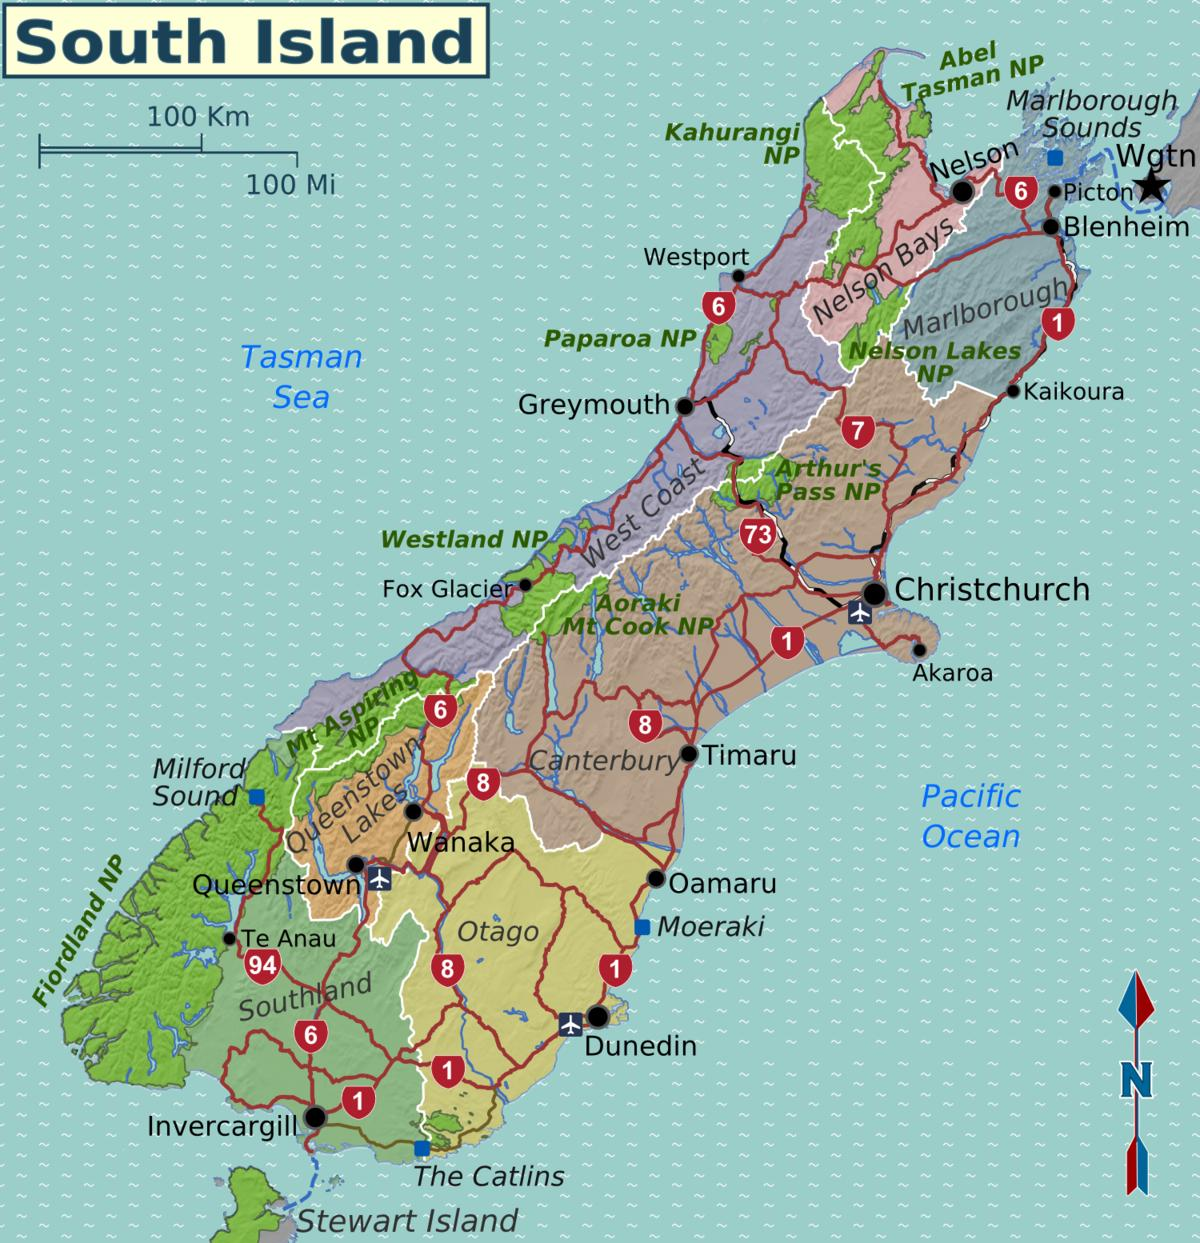 New Zealand Regions Map.Map Of South Island New Zealand Regions Map Of South Island New